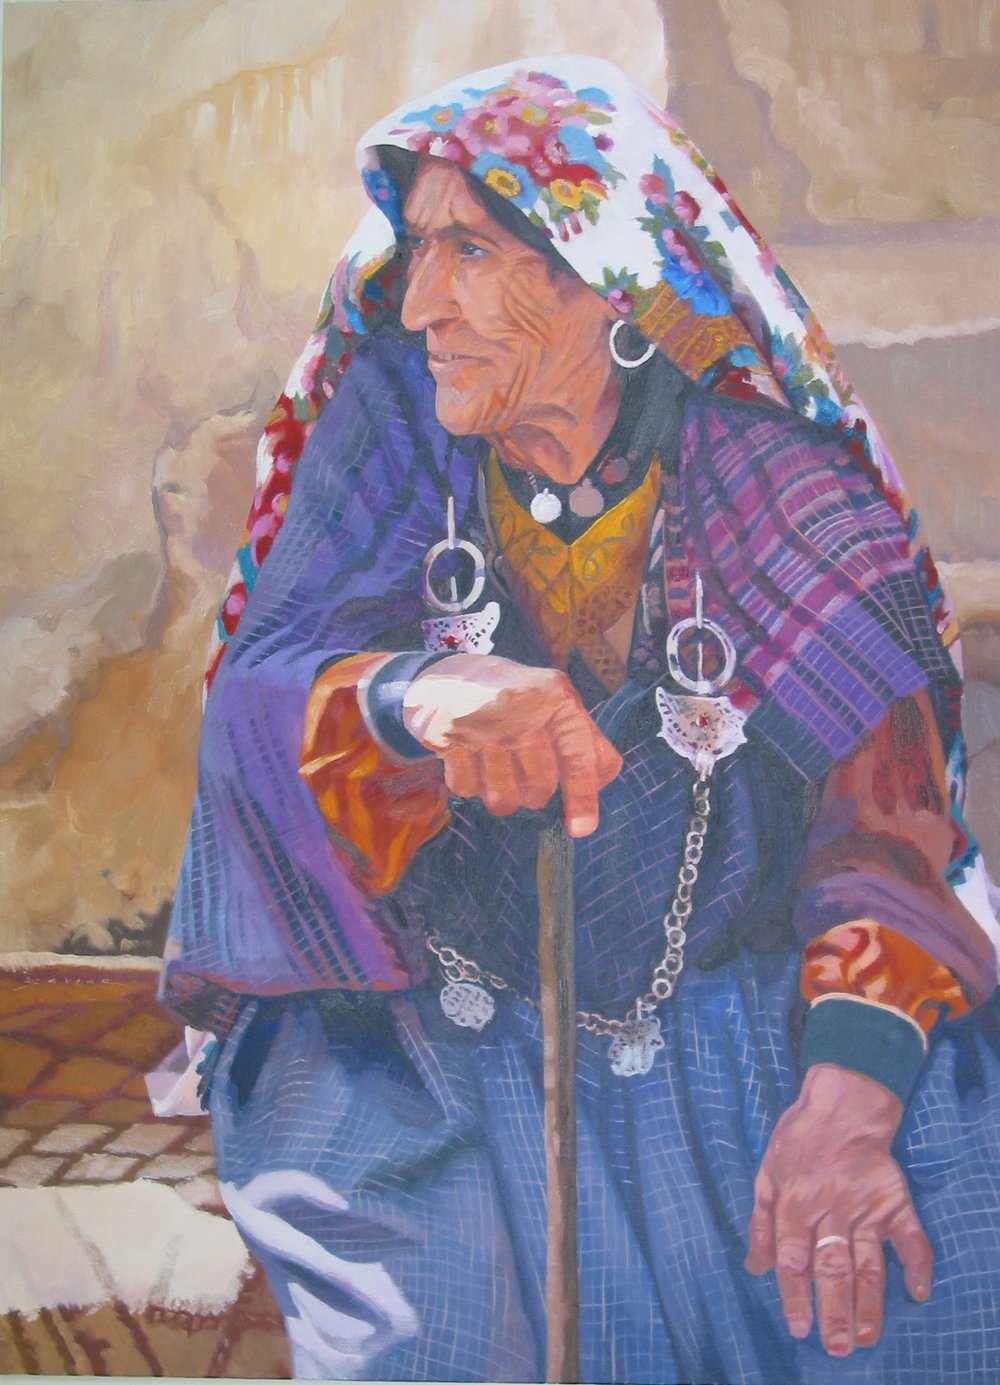 Berber Woman, 30 x 22, oil